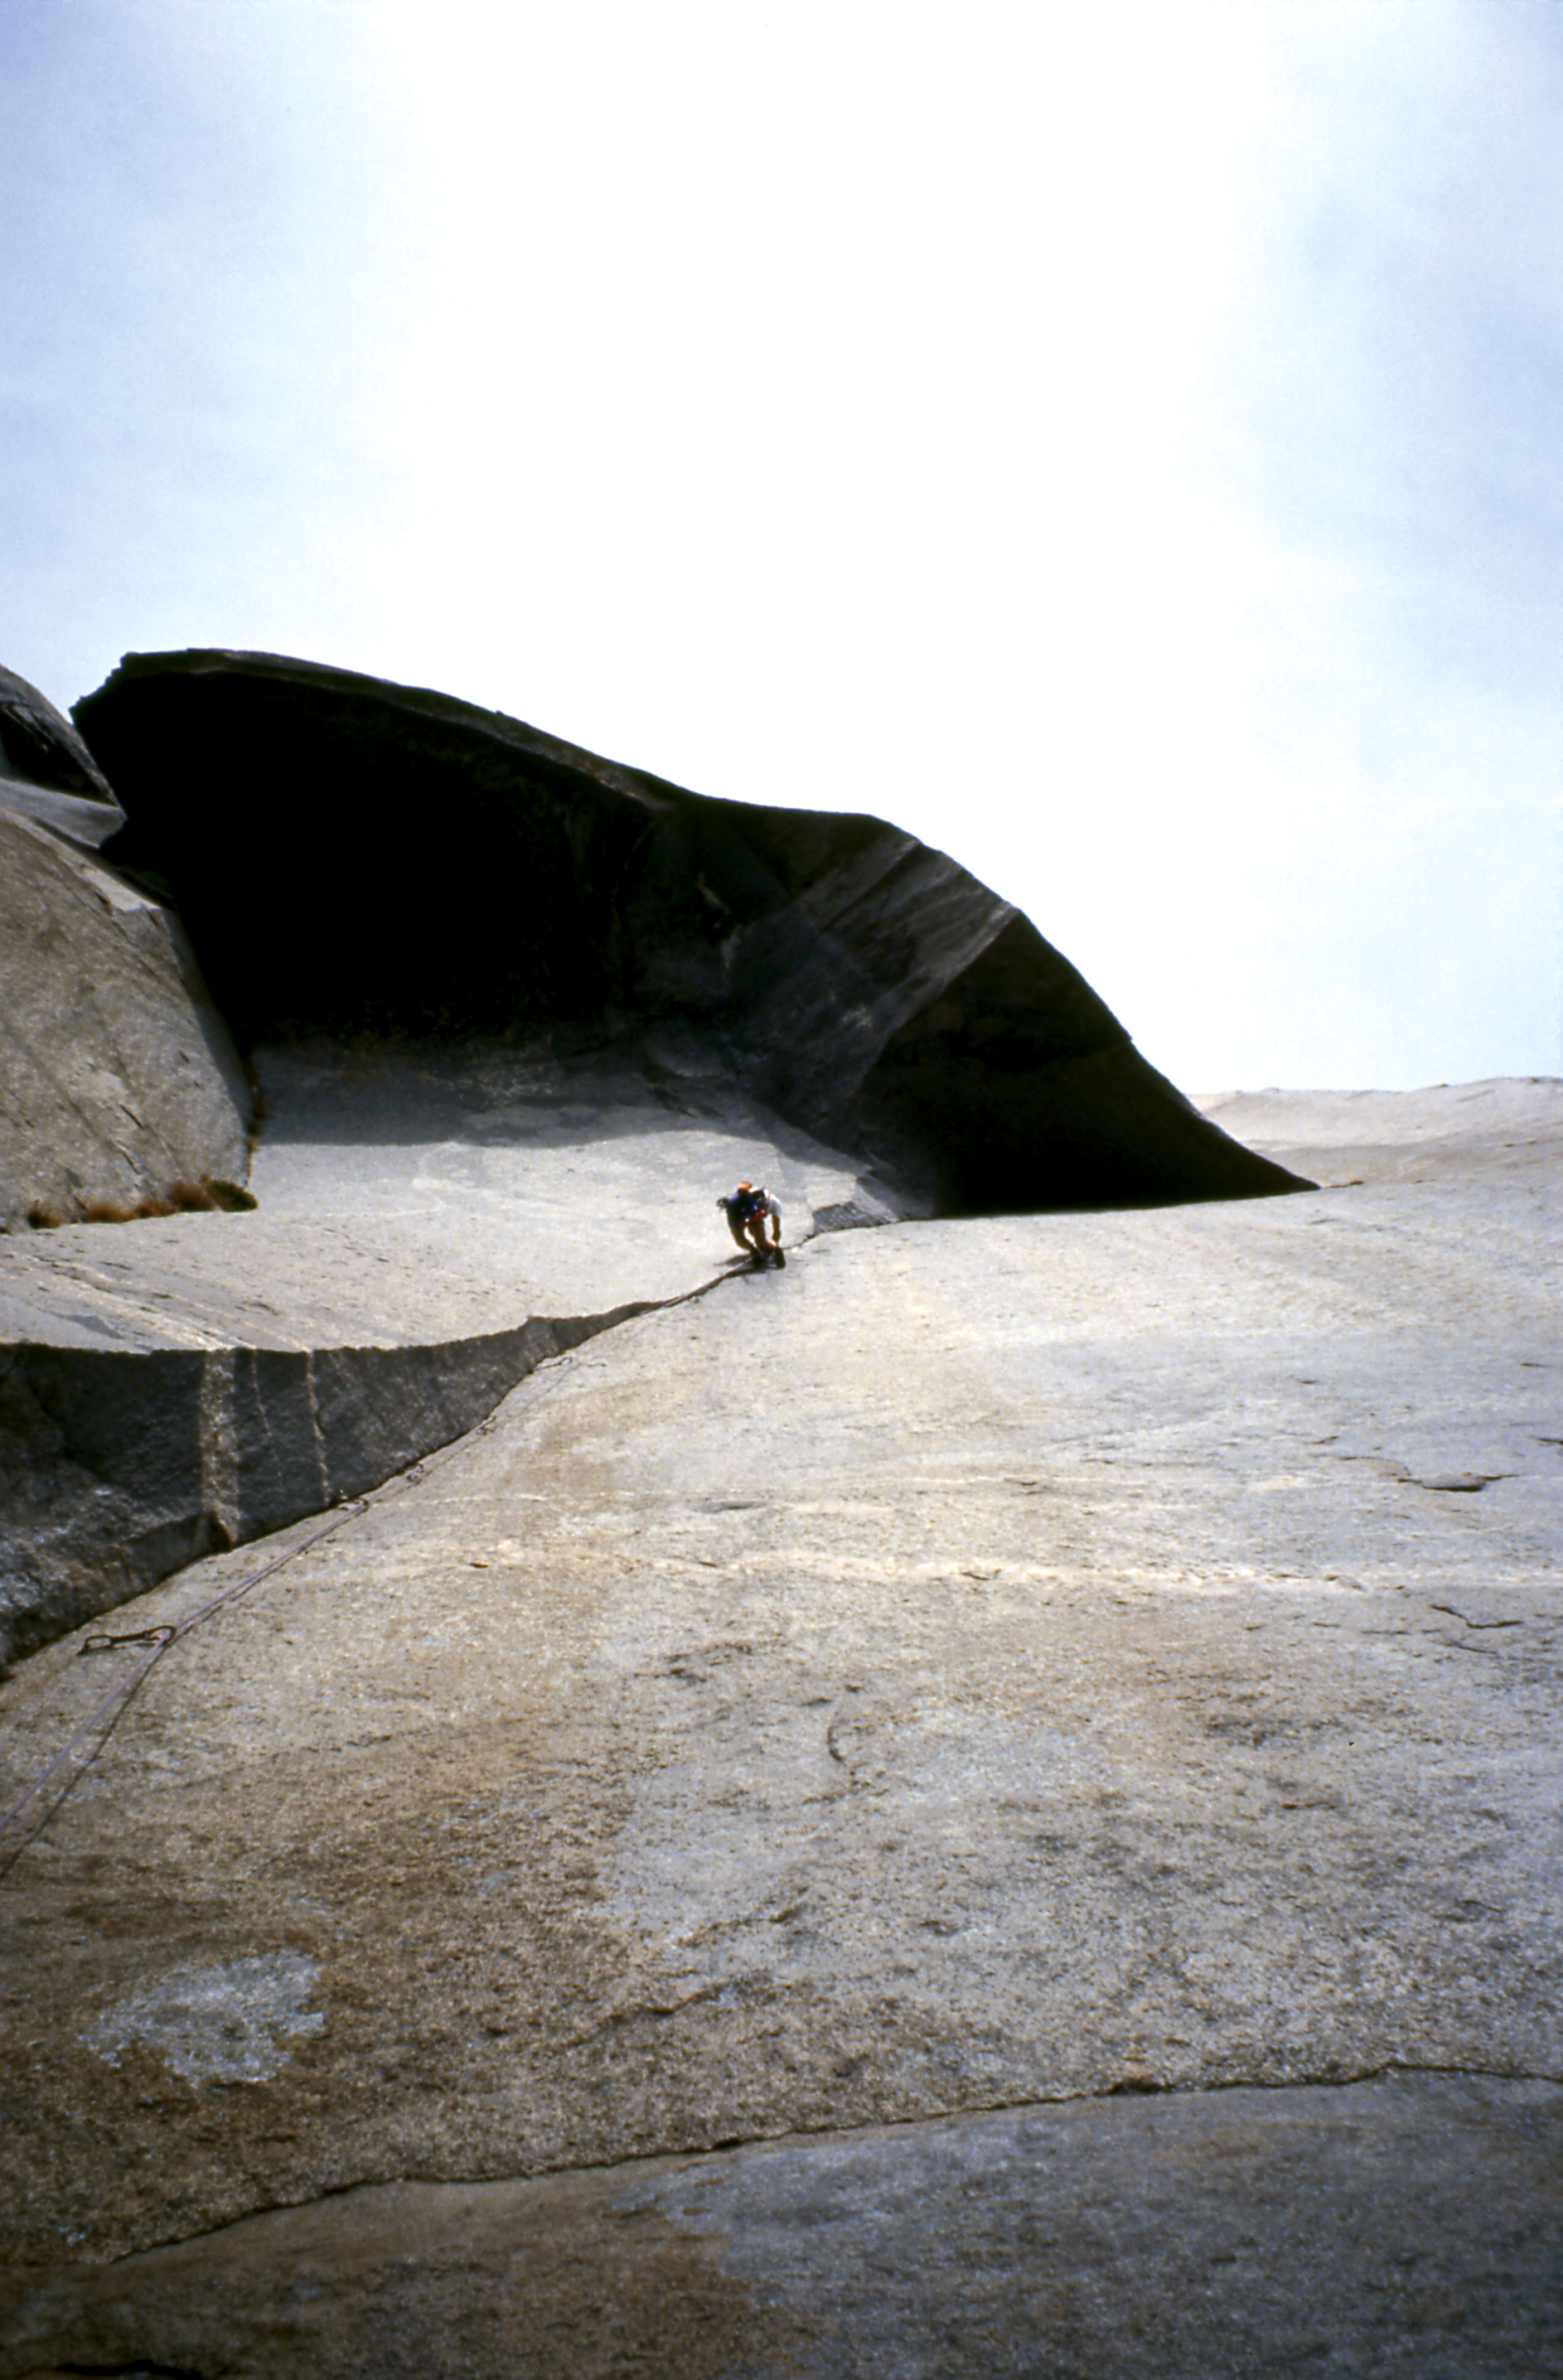 Athol dealing to the Great Roof pitch of The Nose, El Capitan during a 15 hour ascent in 1994.